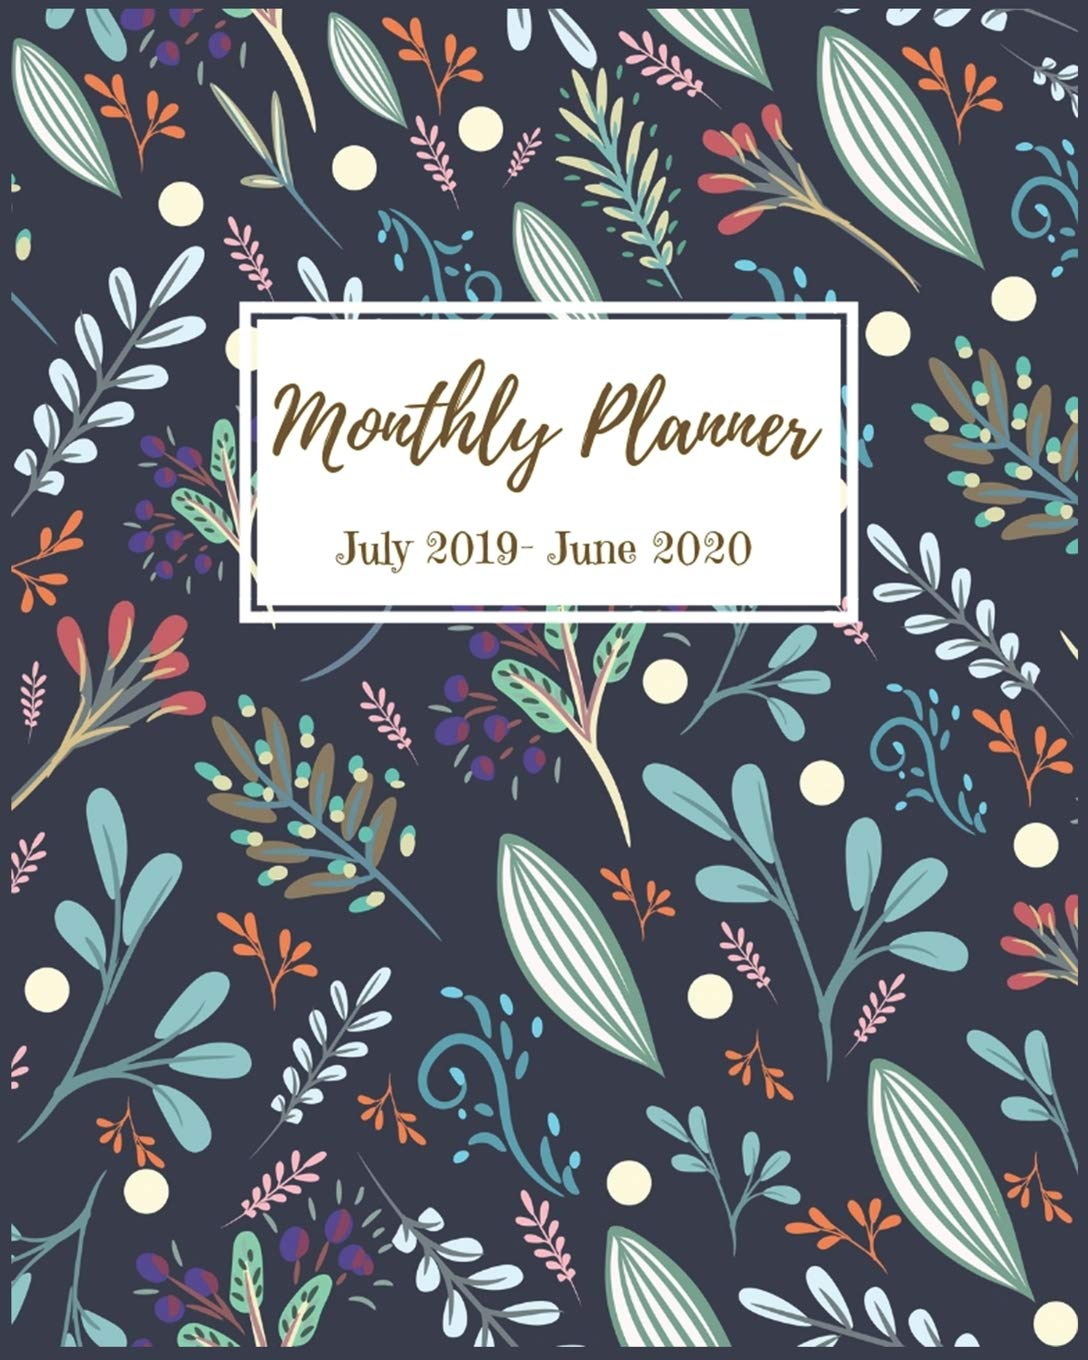 Amazon.com: Monthly Planner July 2019- June 2020: Pretty ...